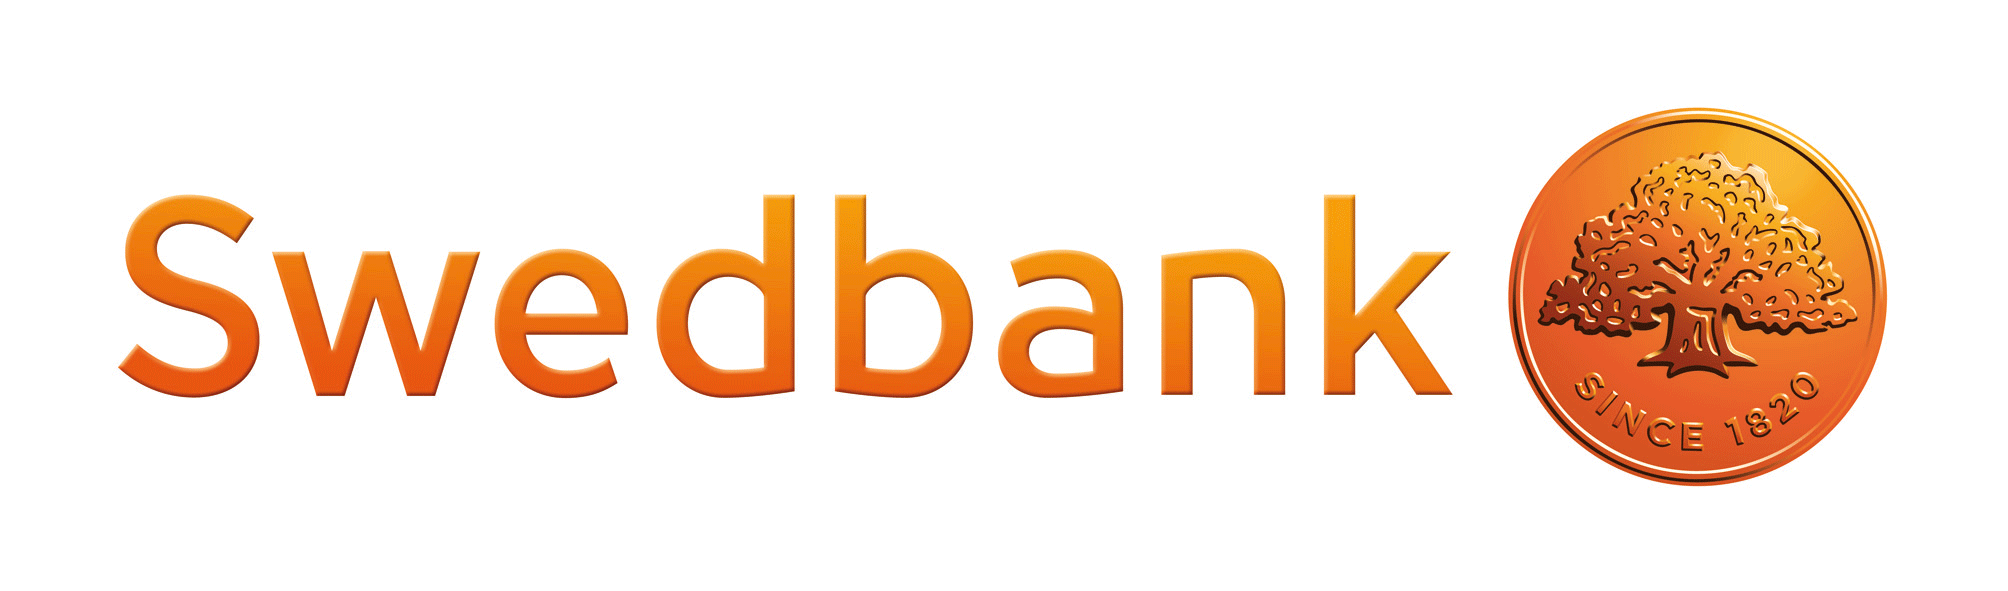 Friday's Potential Drop In Swedbank's Stock Price